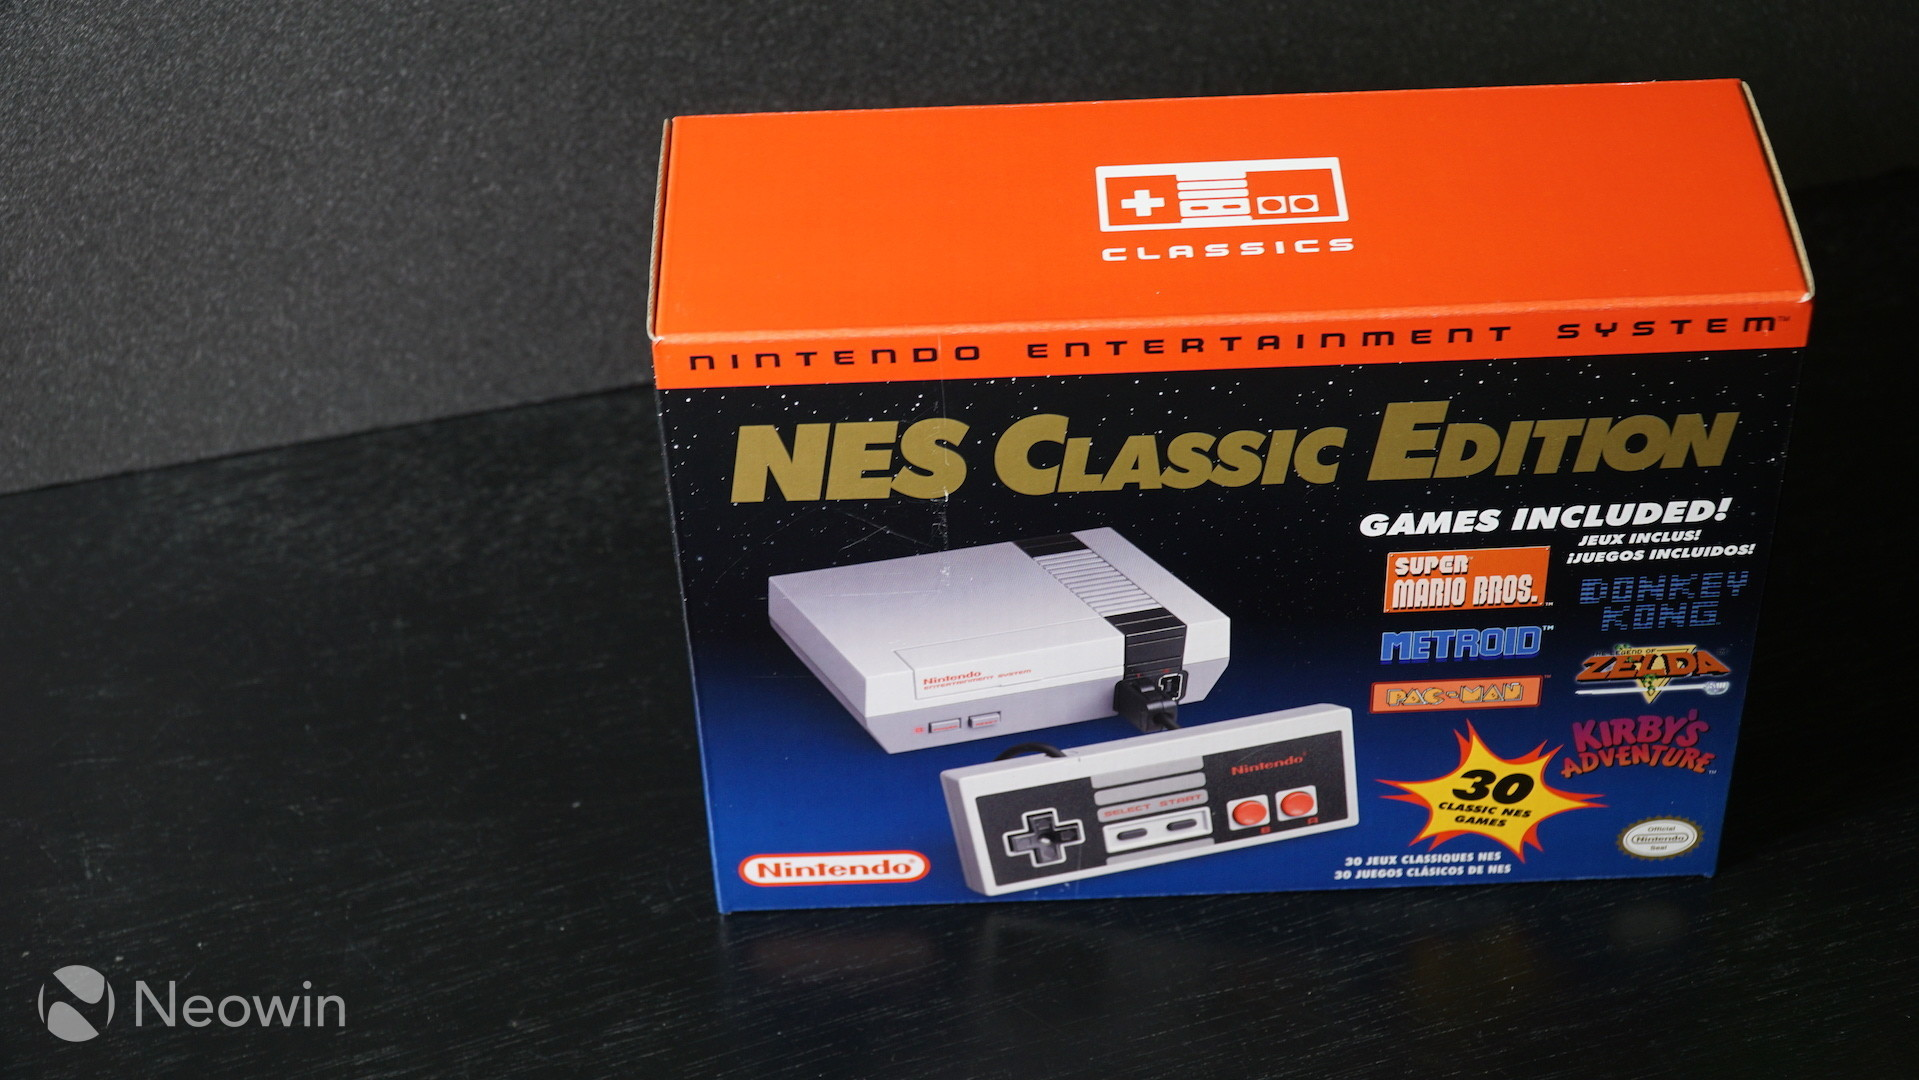 Nintendo Nes Classic Edition Back In Stock Tomorrow At Best Buy With